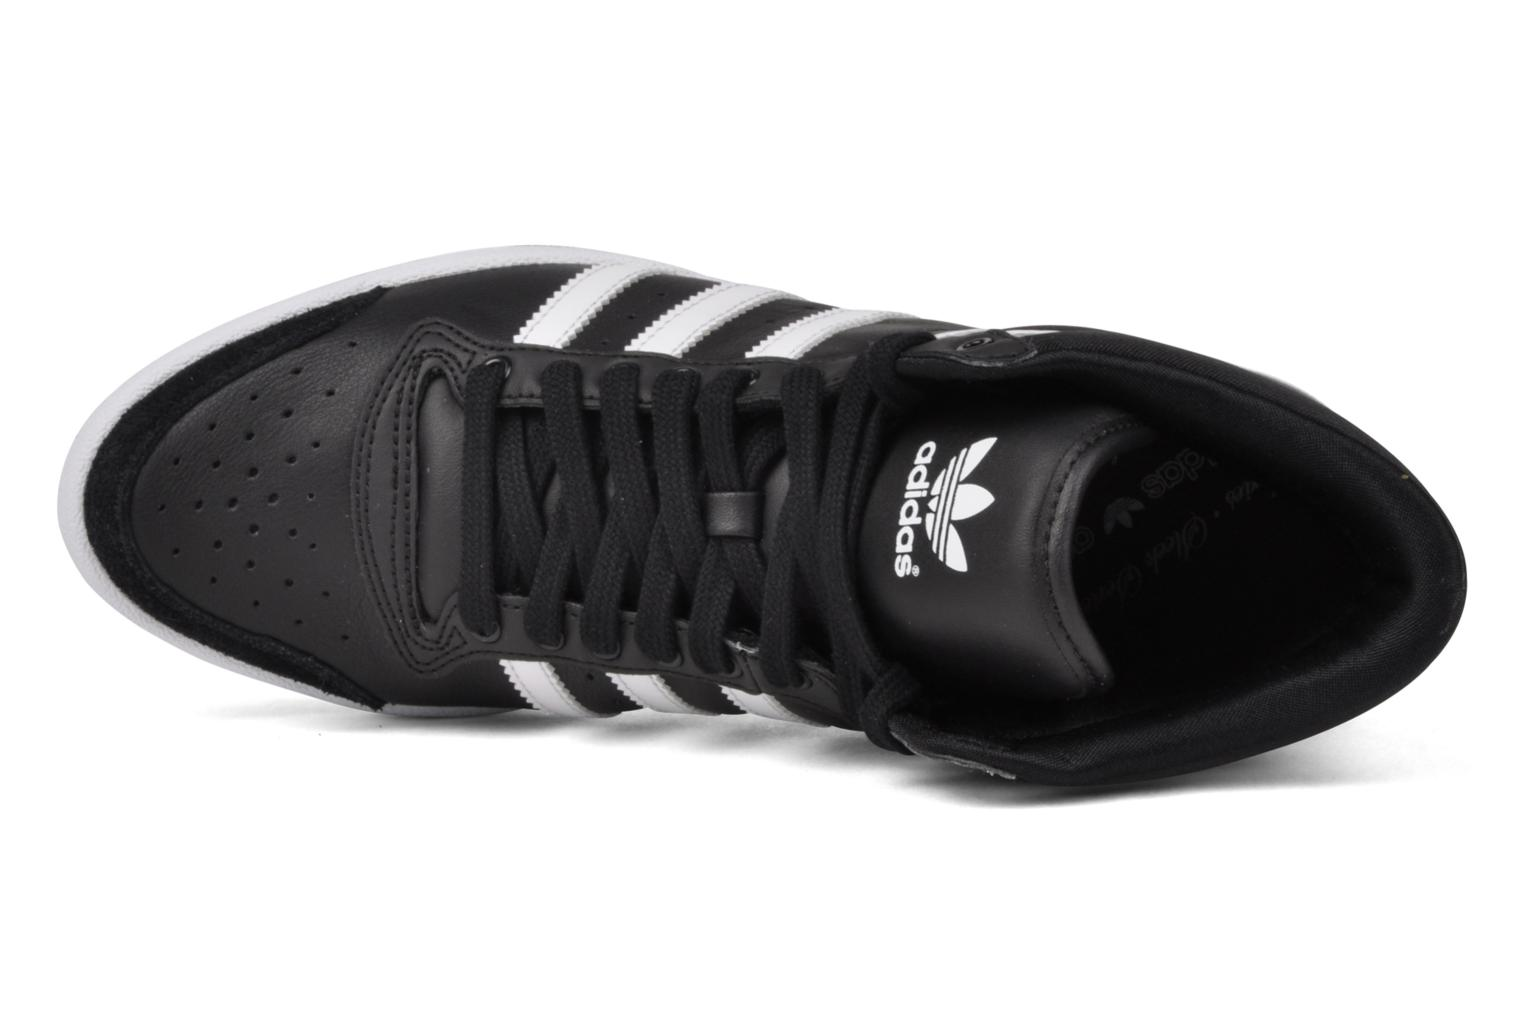 Deportivas Adidas Originals Top Ten Hi Sleek Negro vista lateral izquierda